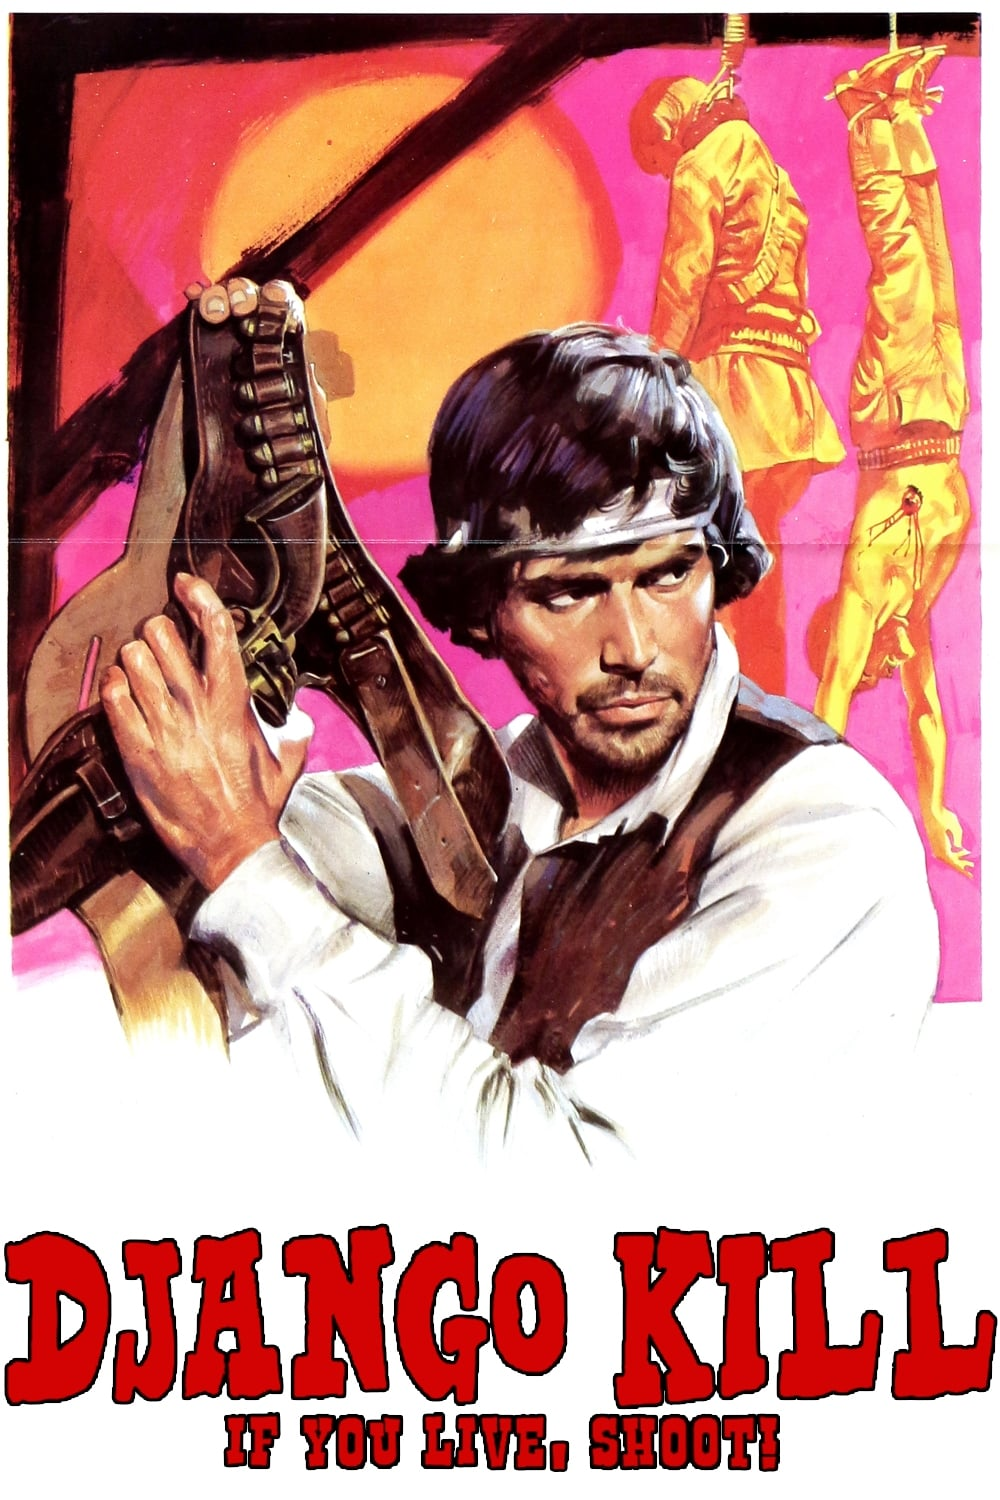 Django Kill... If You Live, Shoot! (1967)